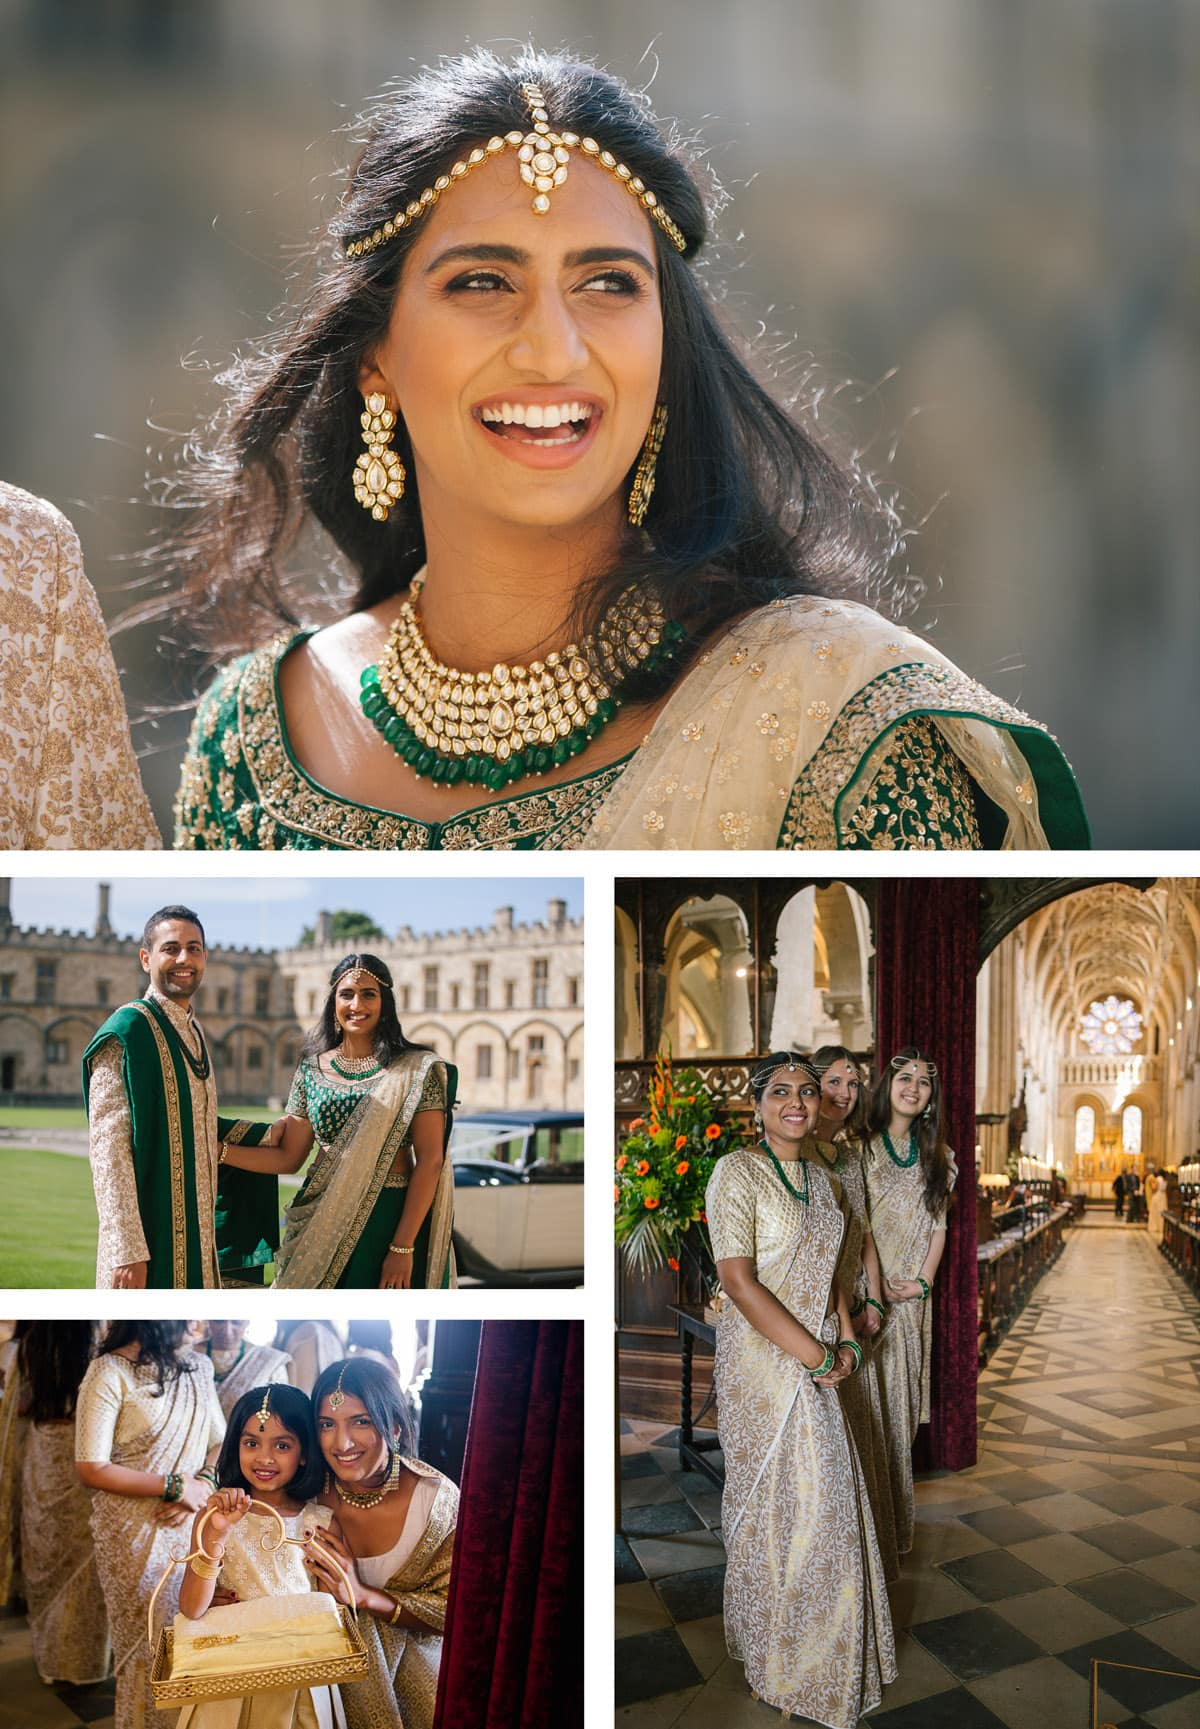 Indian wedding at Christchurch college. Bride and groom in green and gold